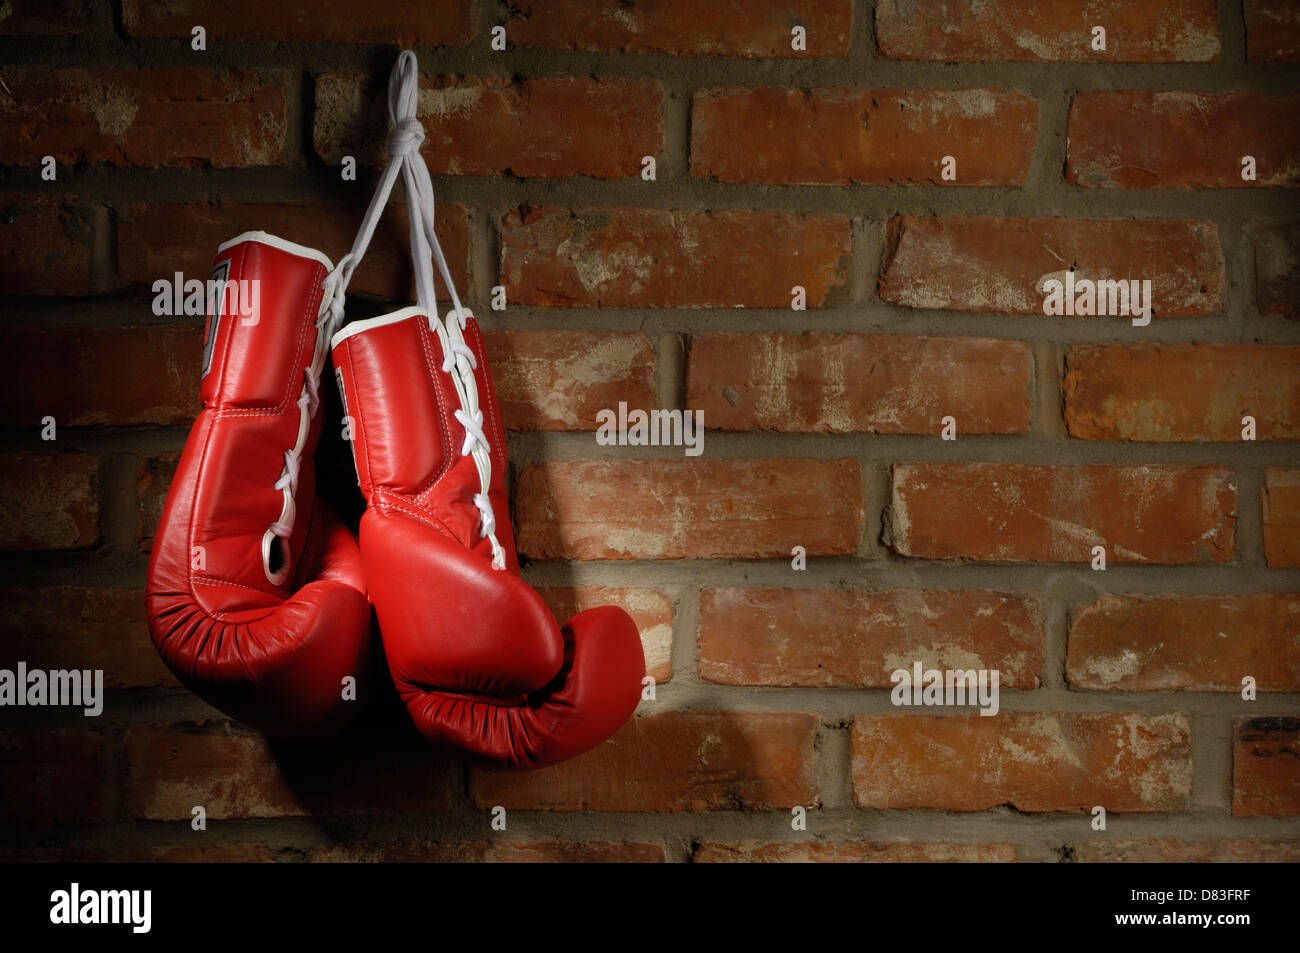 Boxing gloves background